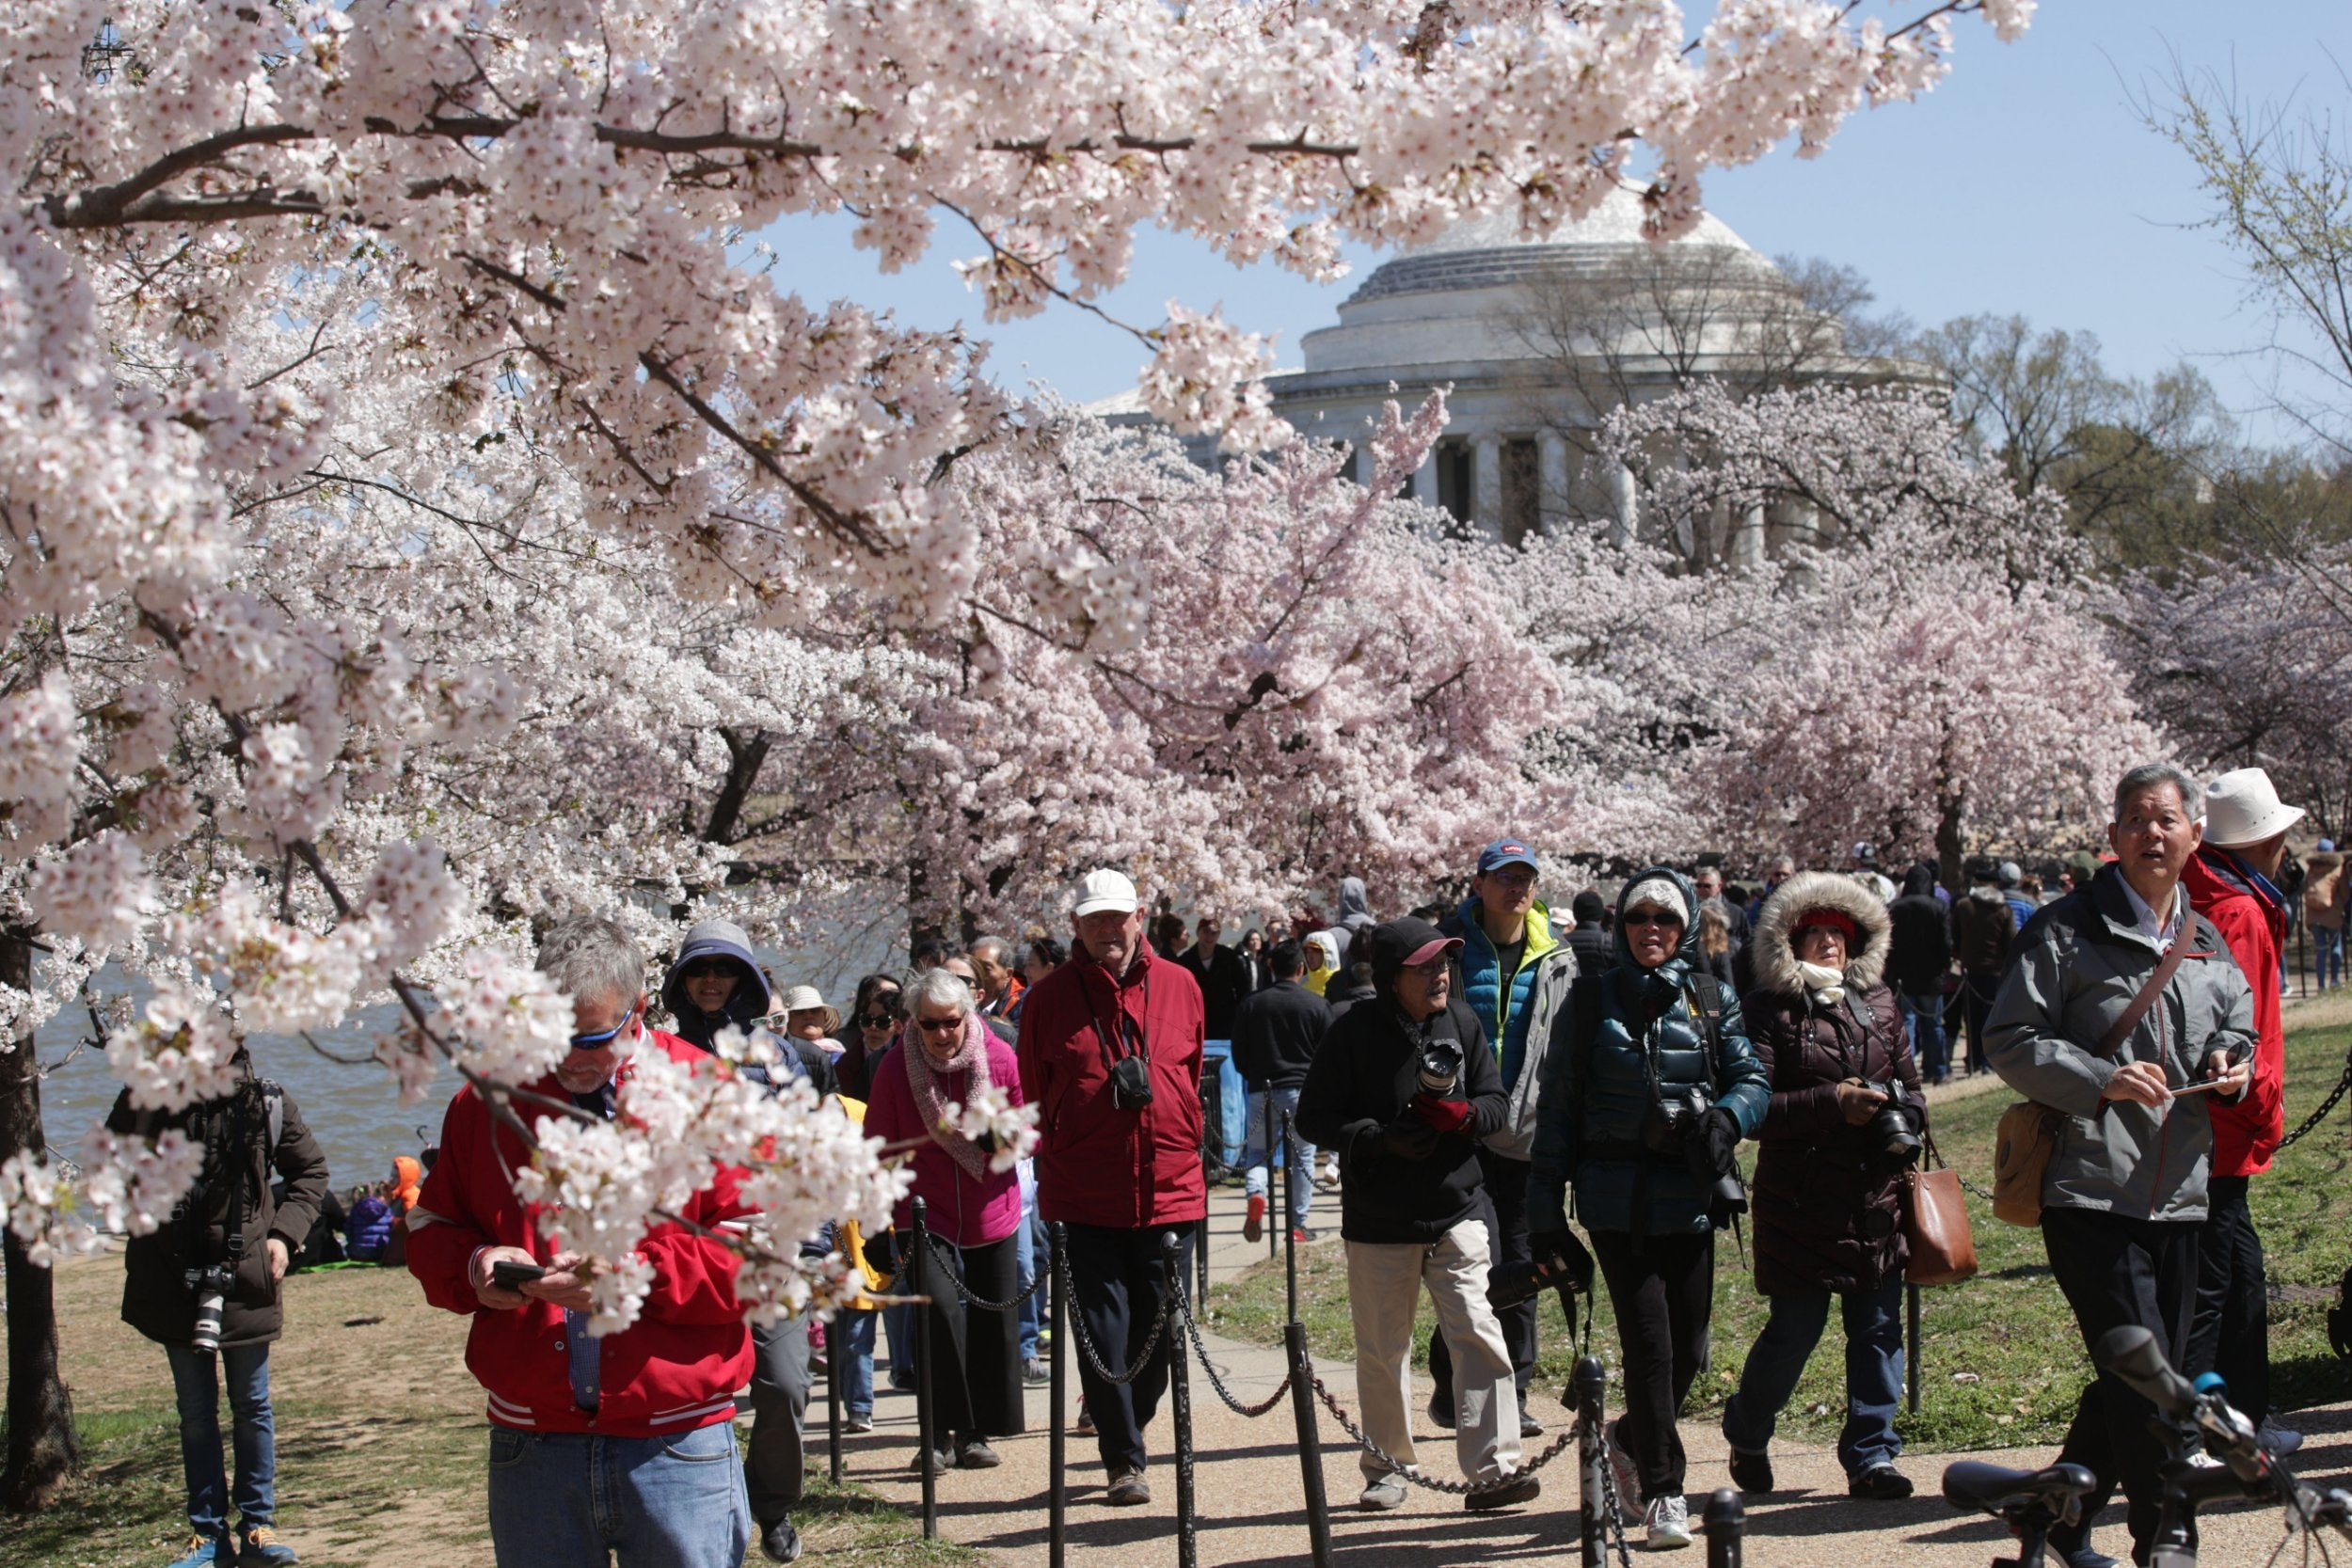 Washington DC travel - latest news, breaking stories and